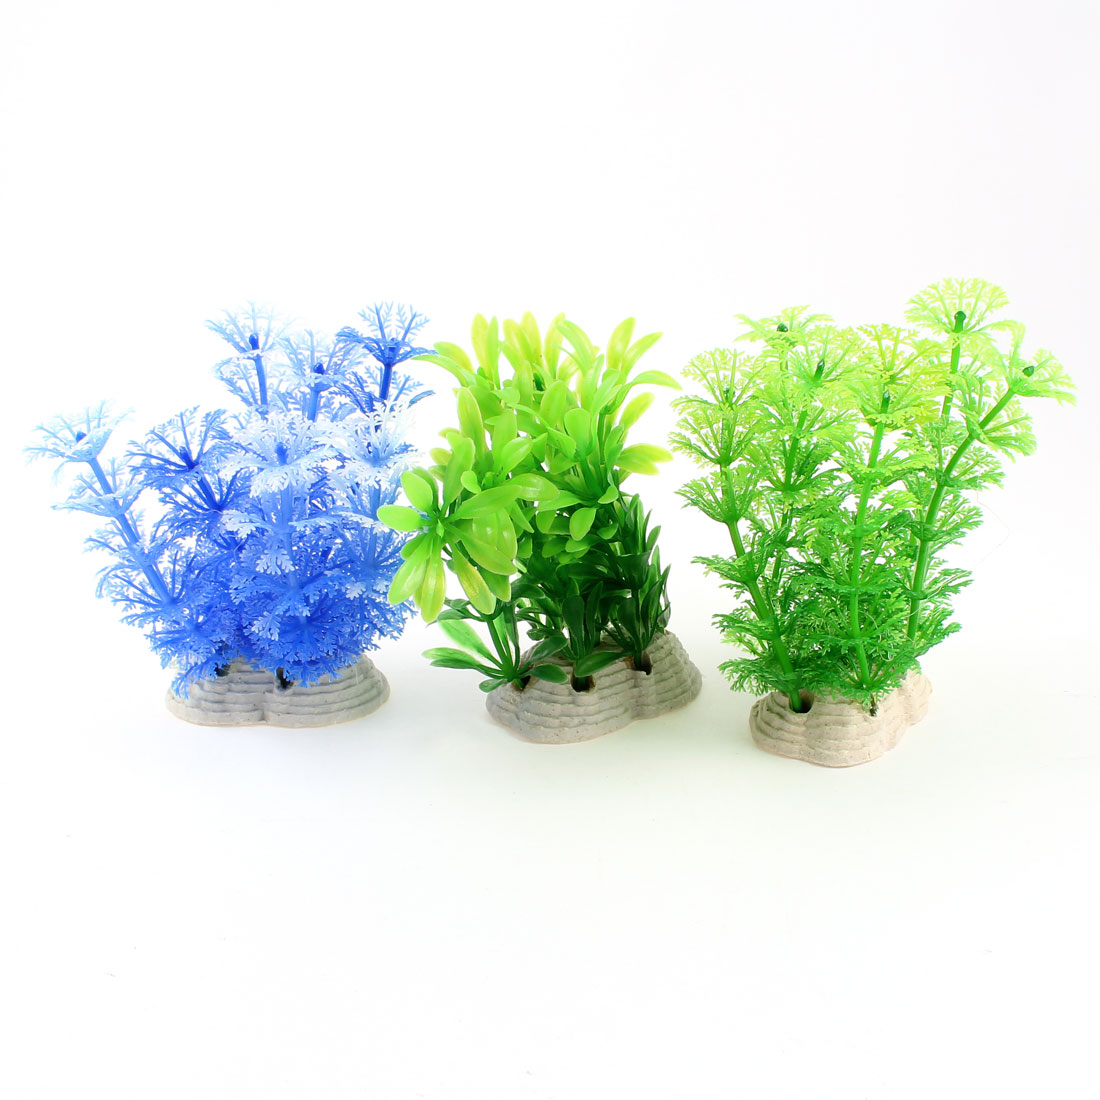 "3 Pcs 3.9"" High Fish Tank Decor Manmade Water Plants Grasses Green Blue"